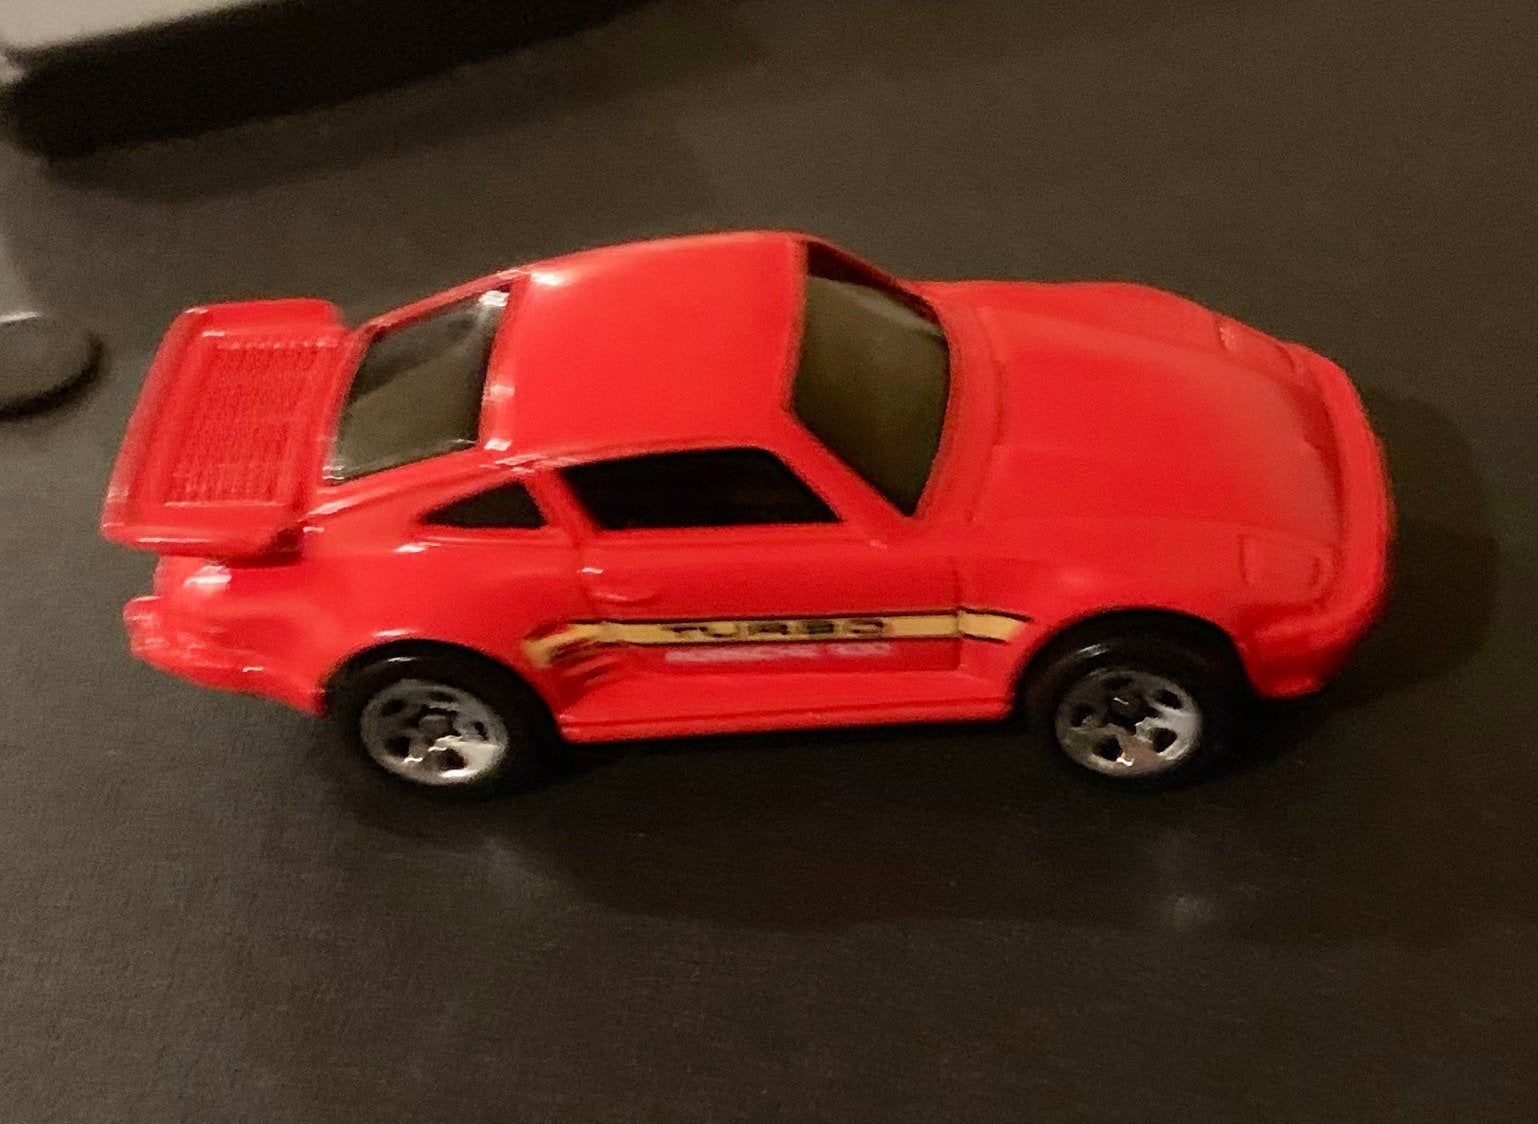 Vintage Hot Wheels Red Blackwall BW Porsche | Etsy